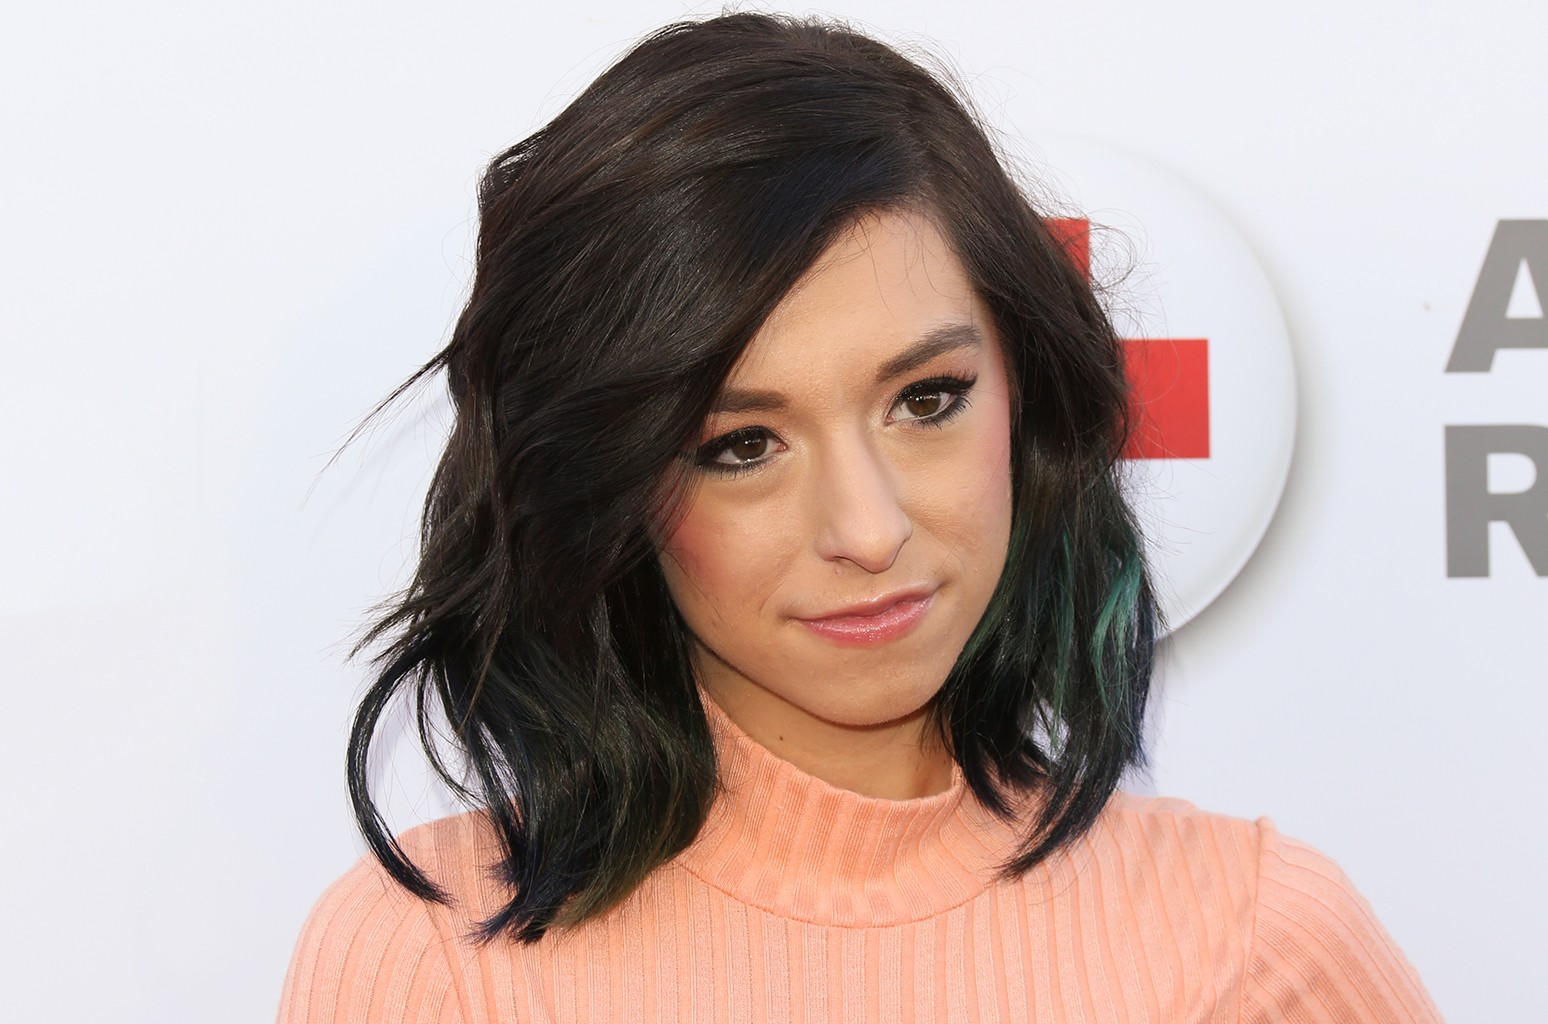 Christina Grimmie in 2016